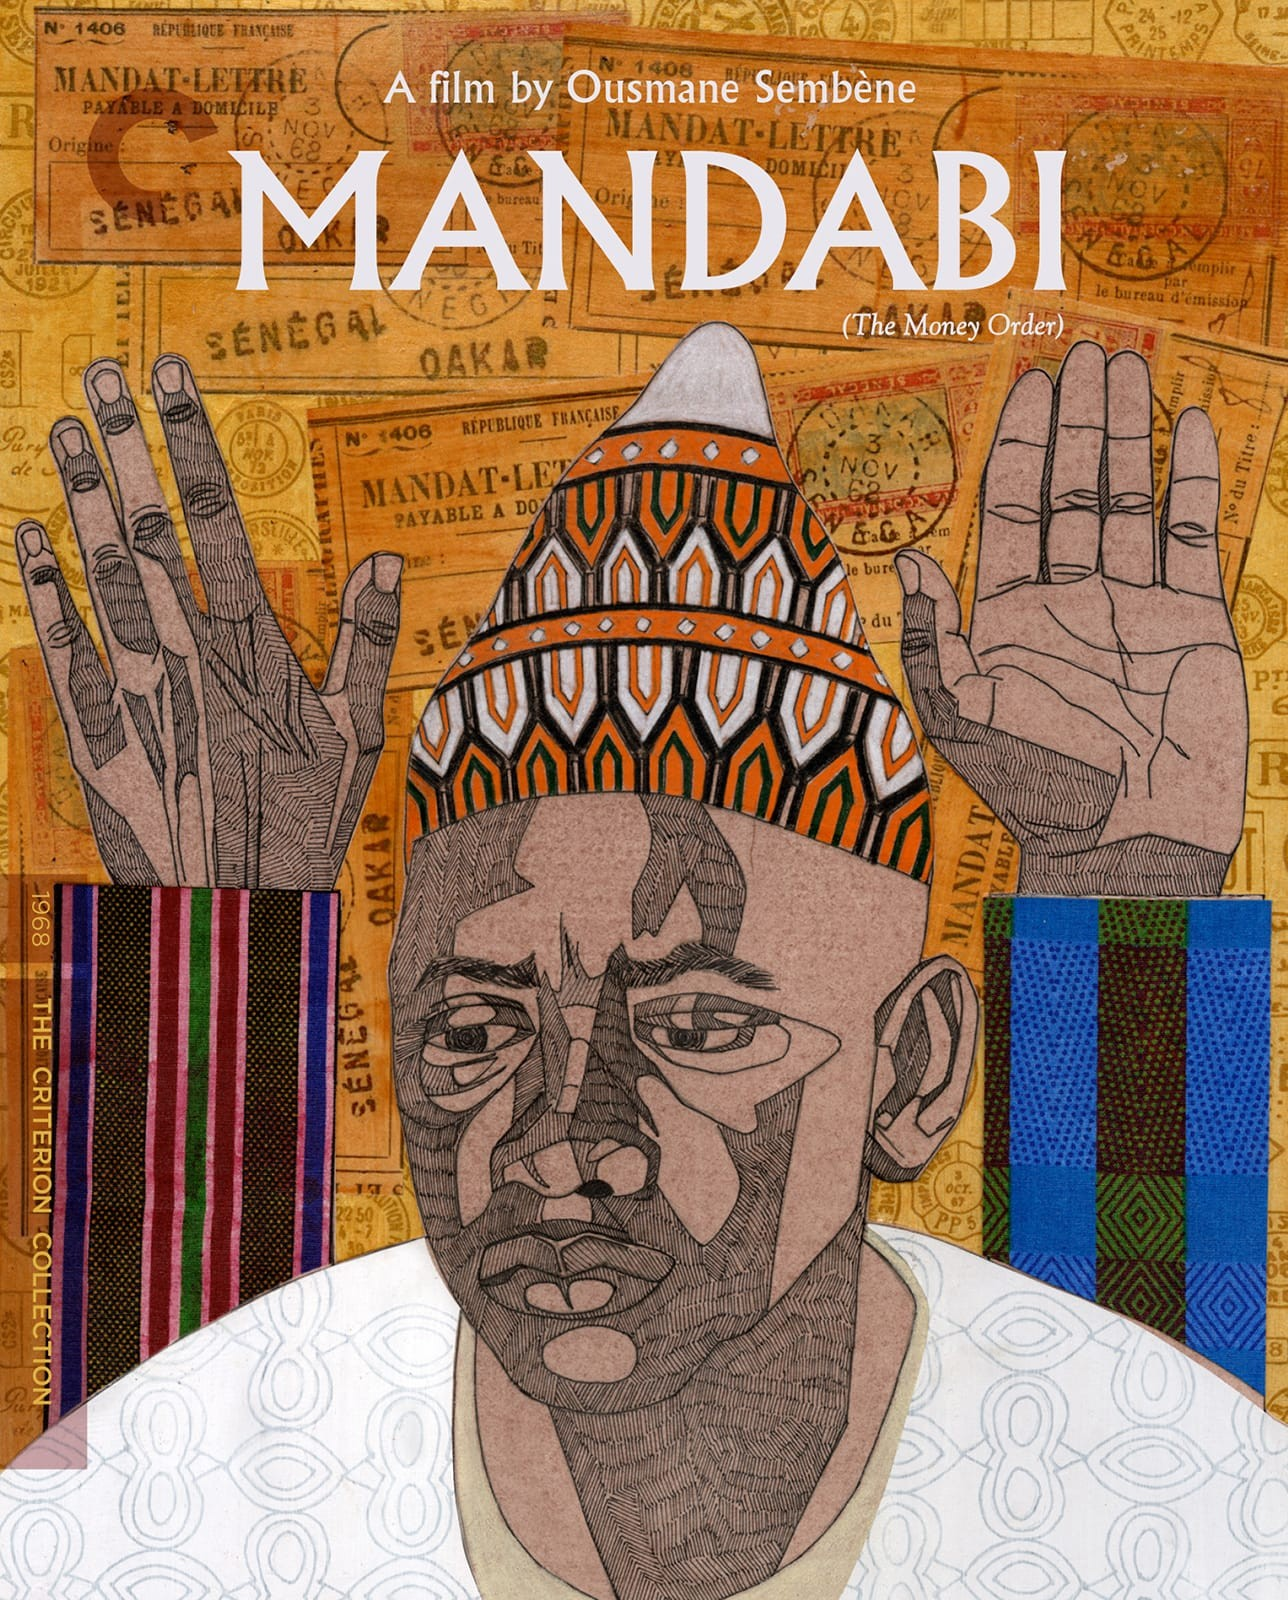 Mandabi (1968) | The Criterion Collection